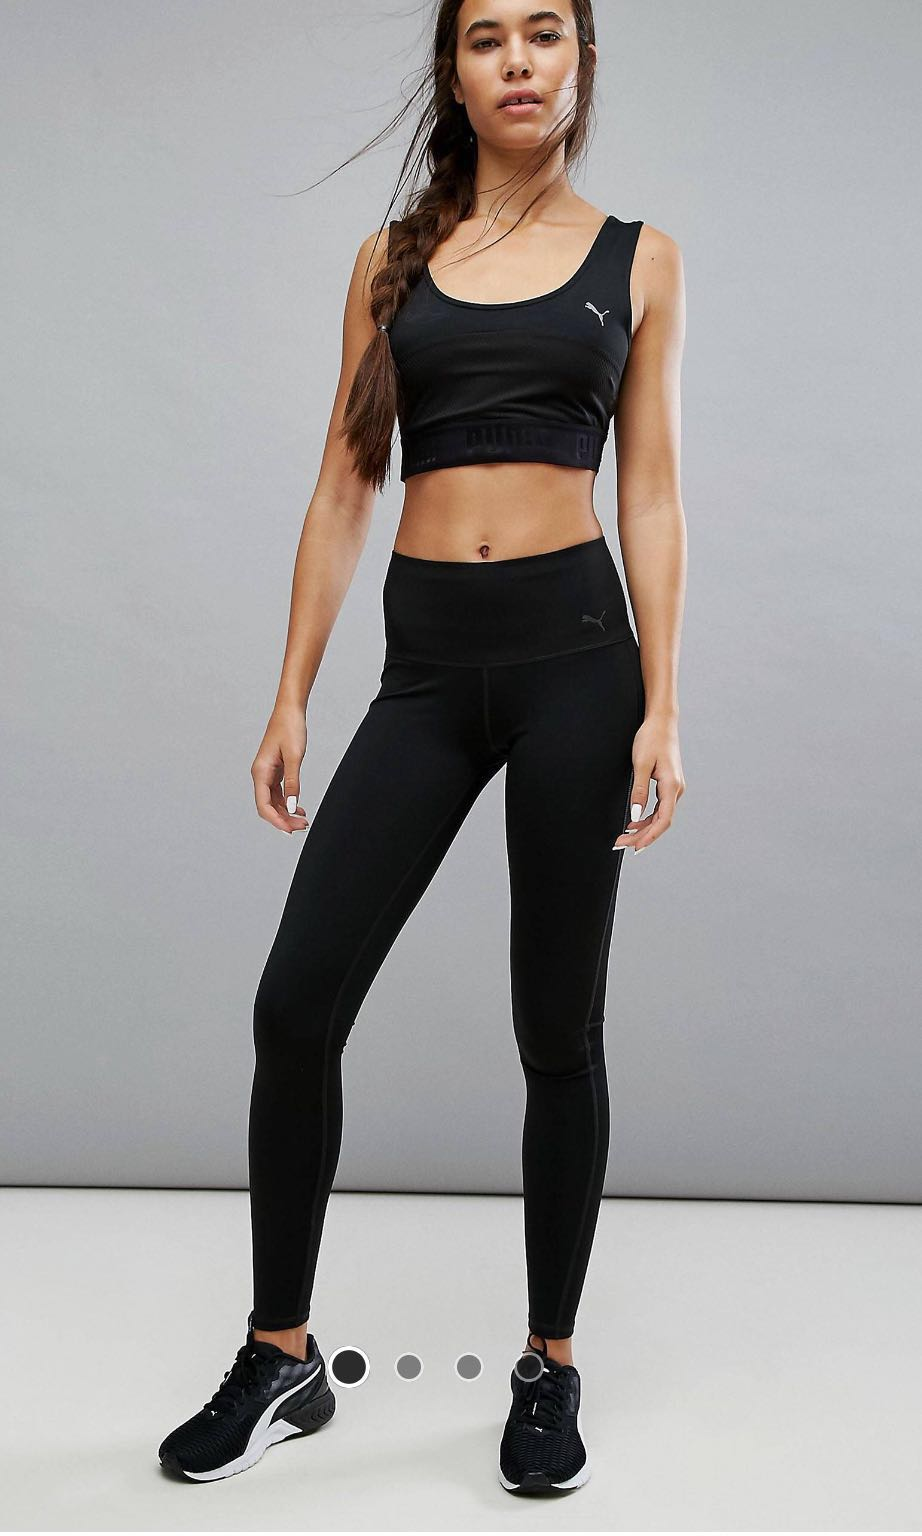 554e93f867aace Puma Everyday Train Tights in Black on Carousell